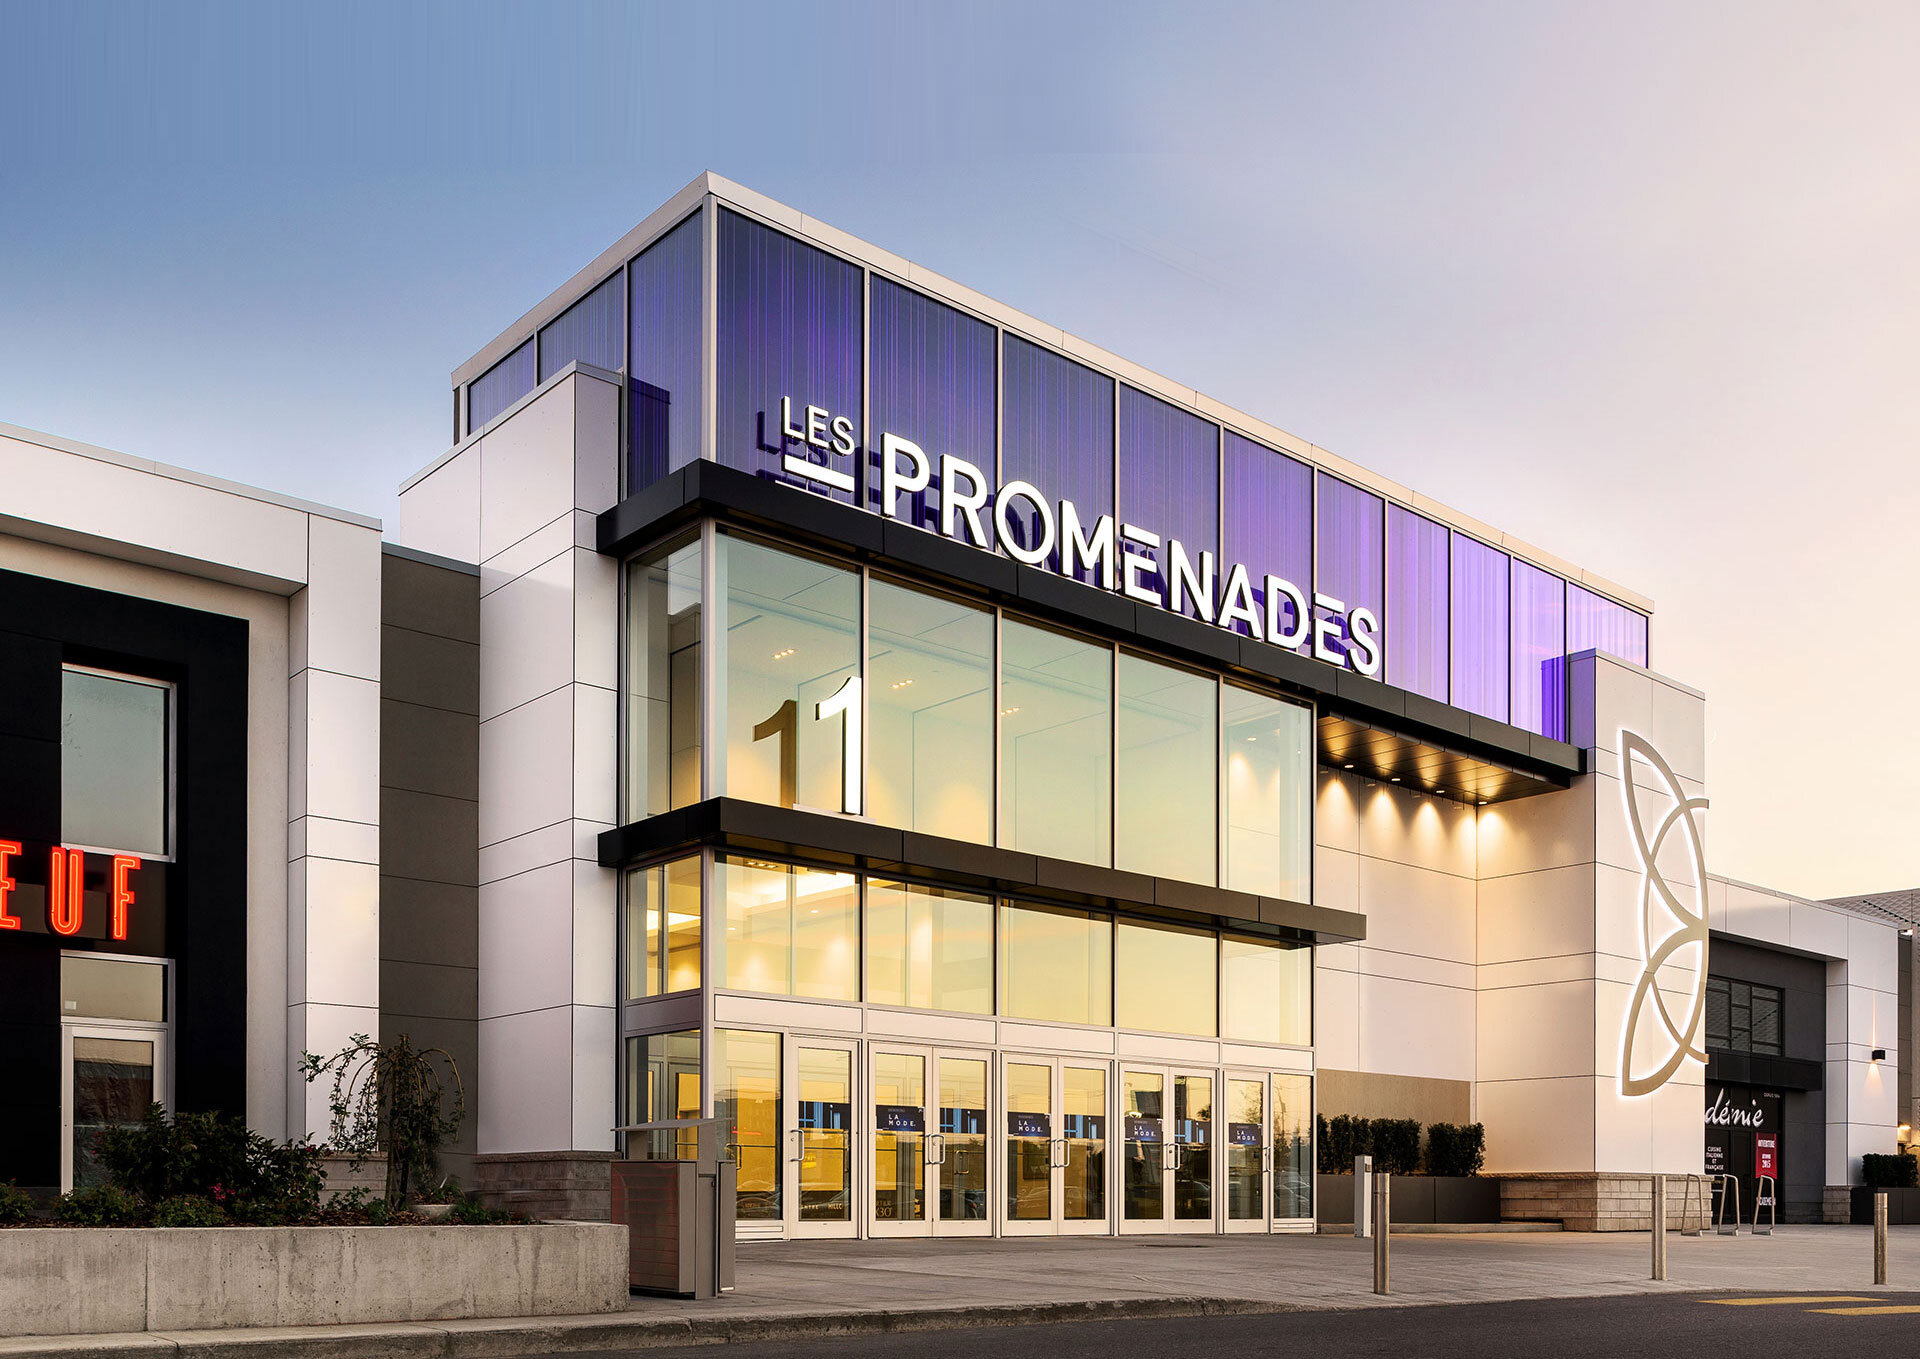 LES PROMENADES GATINEAU PHOTO: OXFORD PROPERTIES